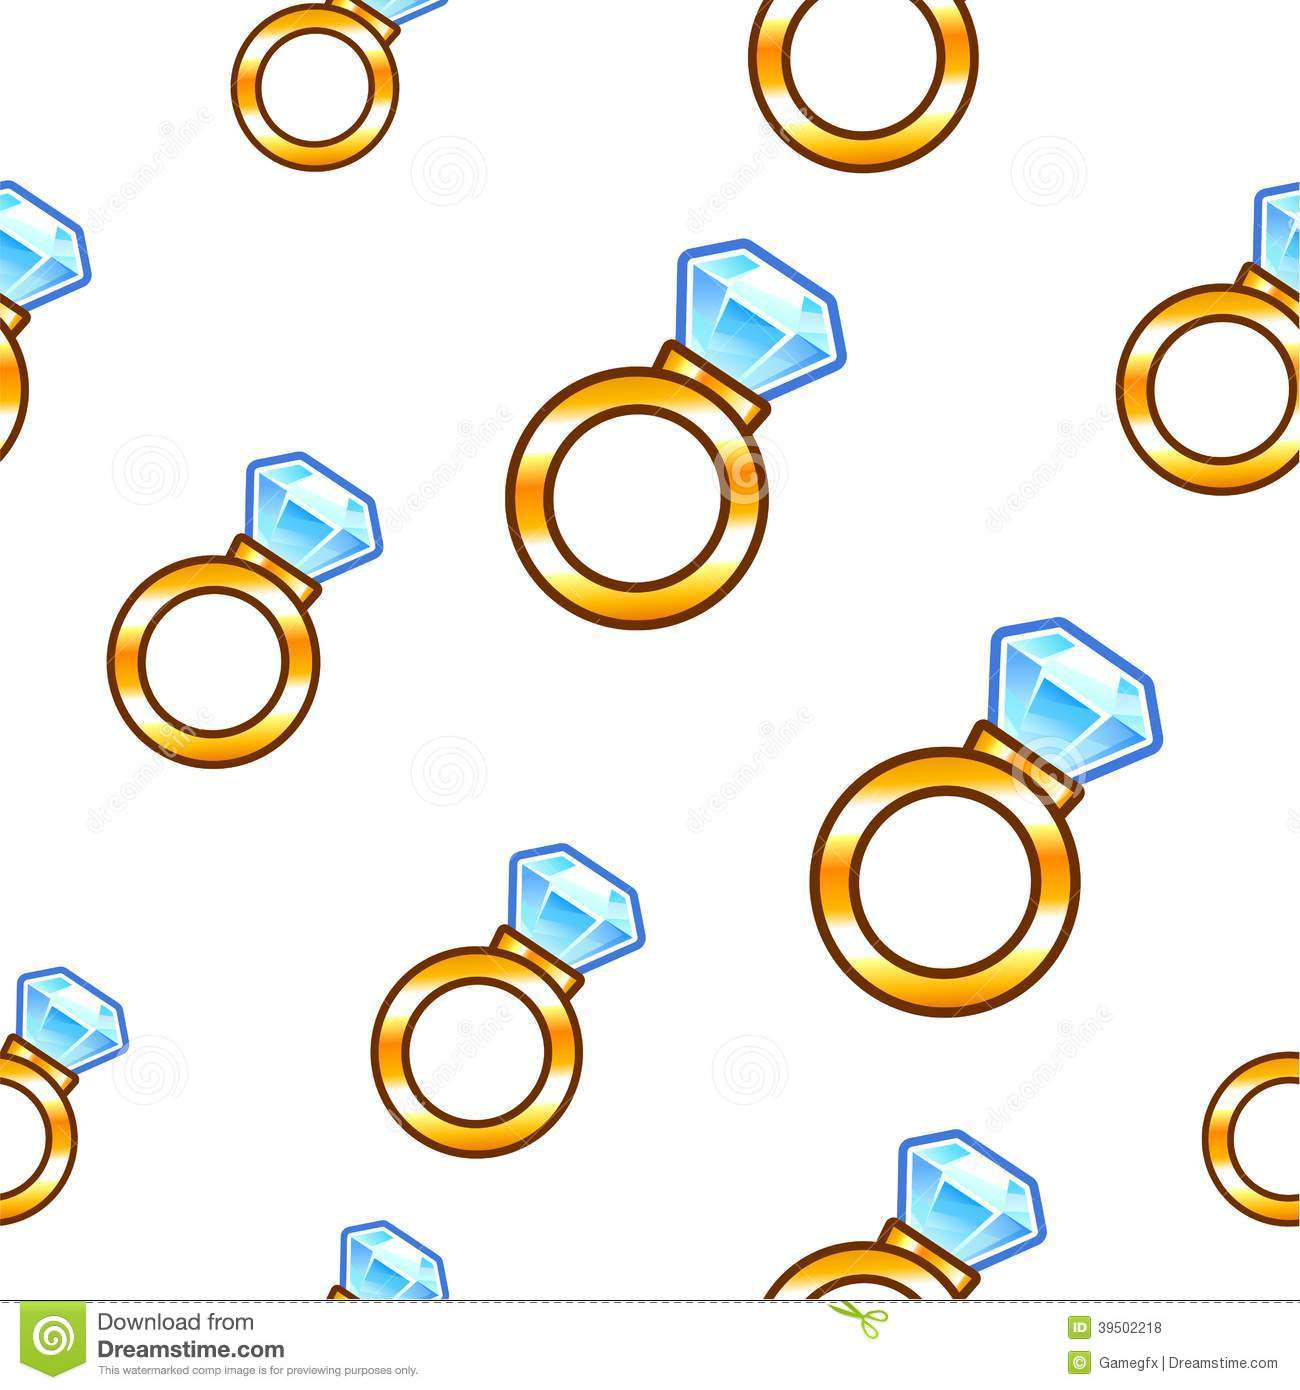 Diamond ring background